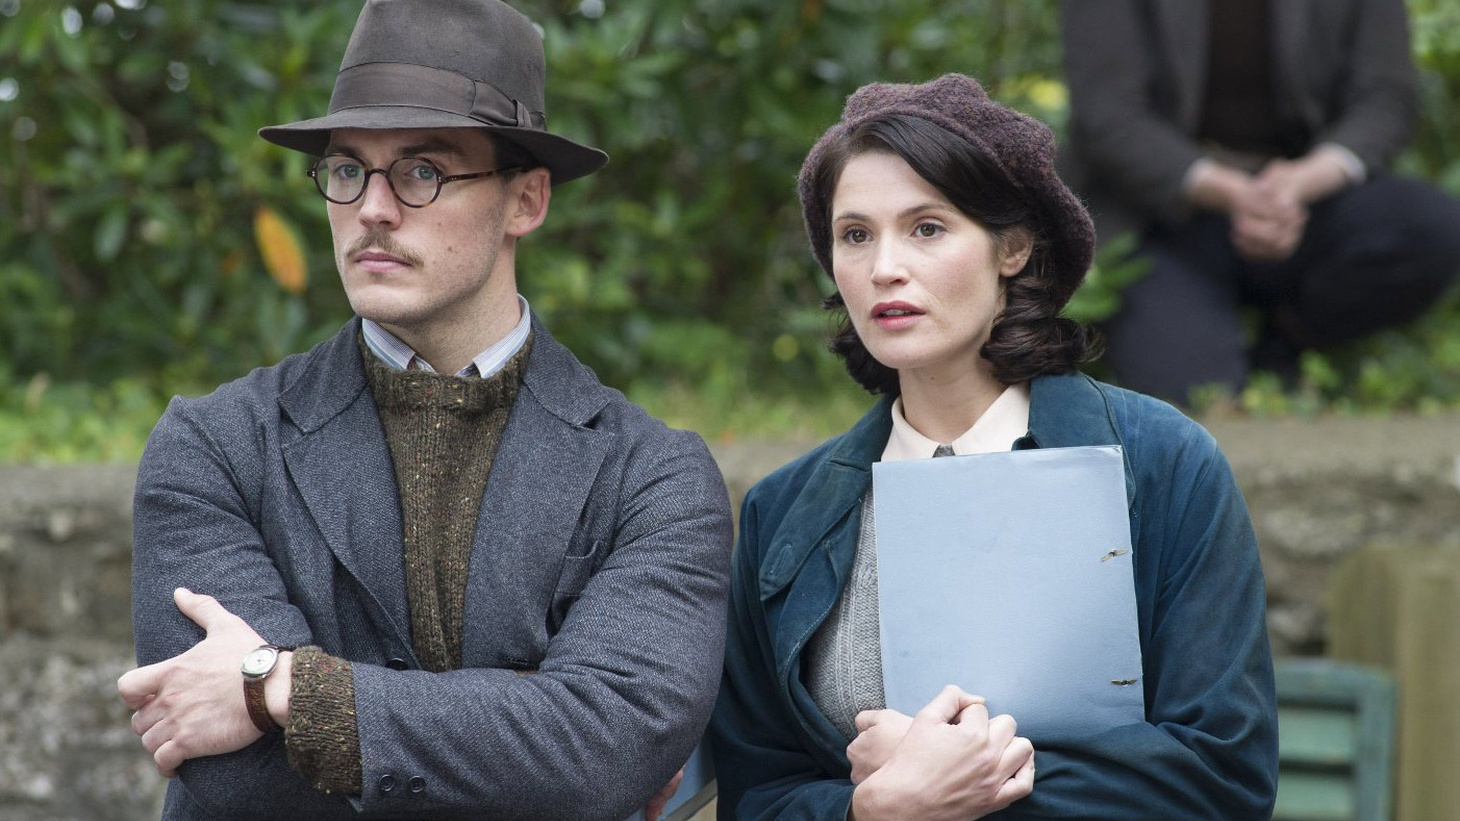 Joe Morgenstern says Their Finest is one of the smartest, funniest and most surprising movies he's seen in years, proof of the power of two stories artfully told.